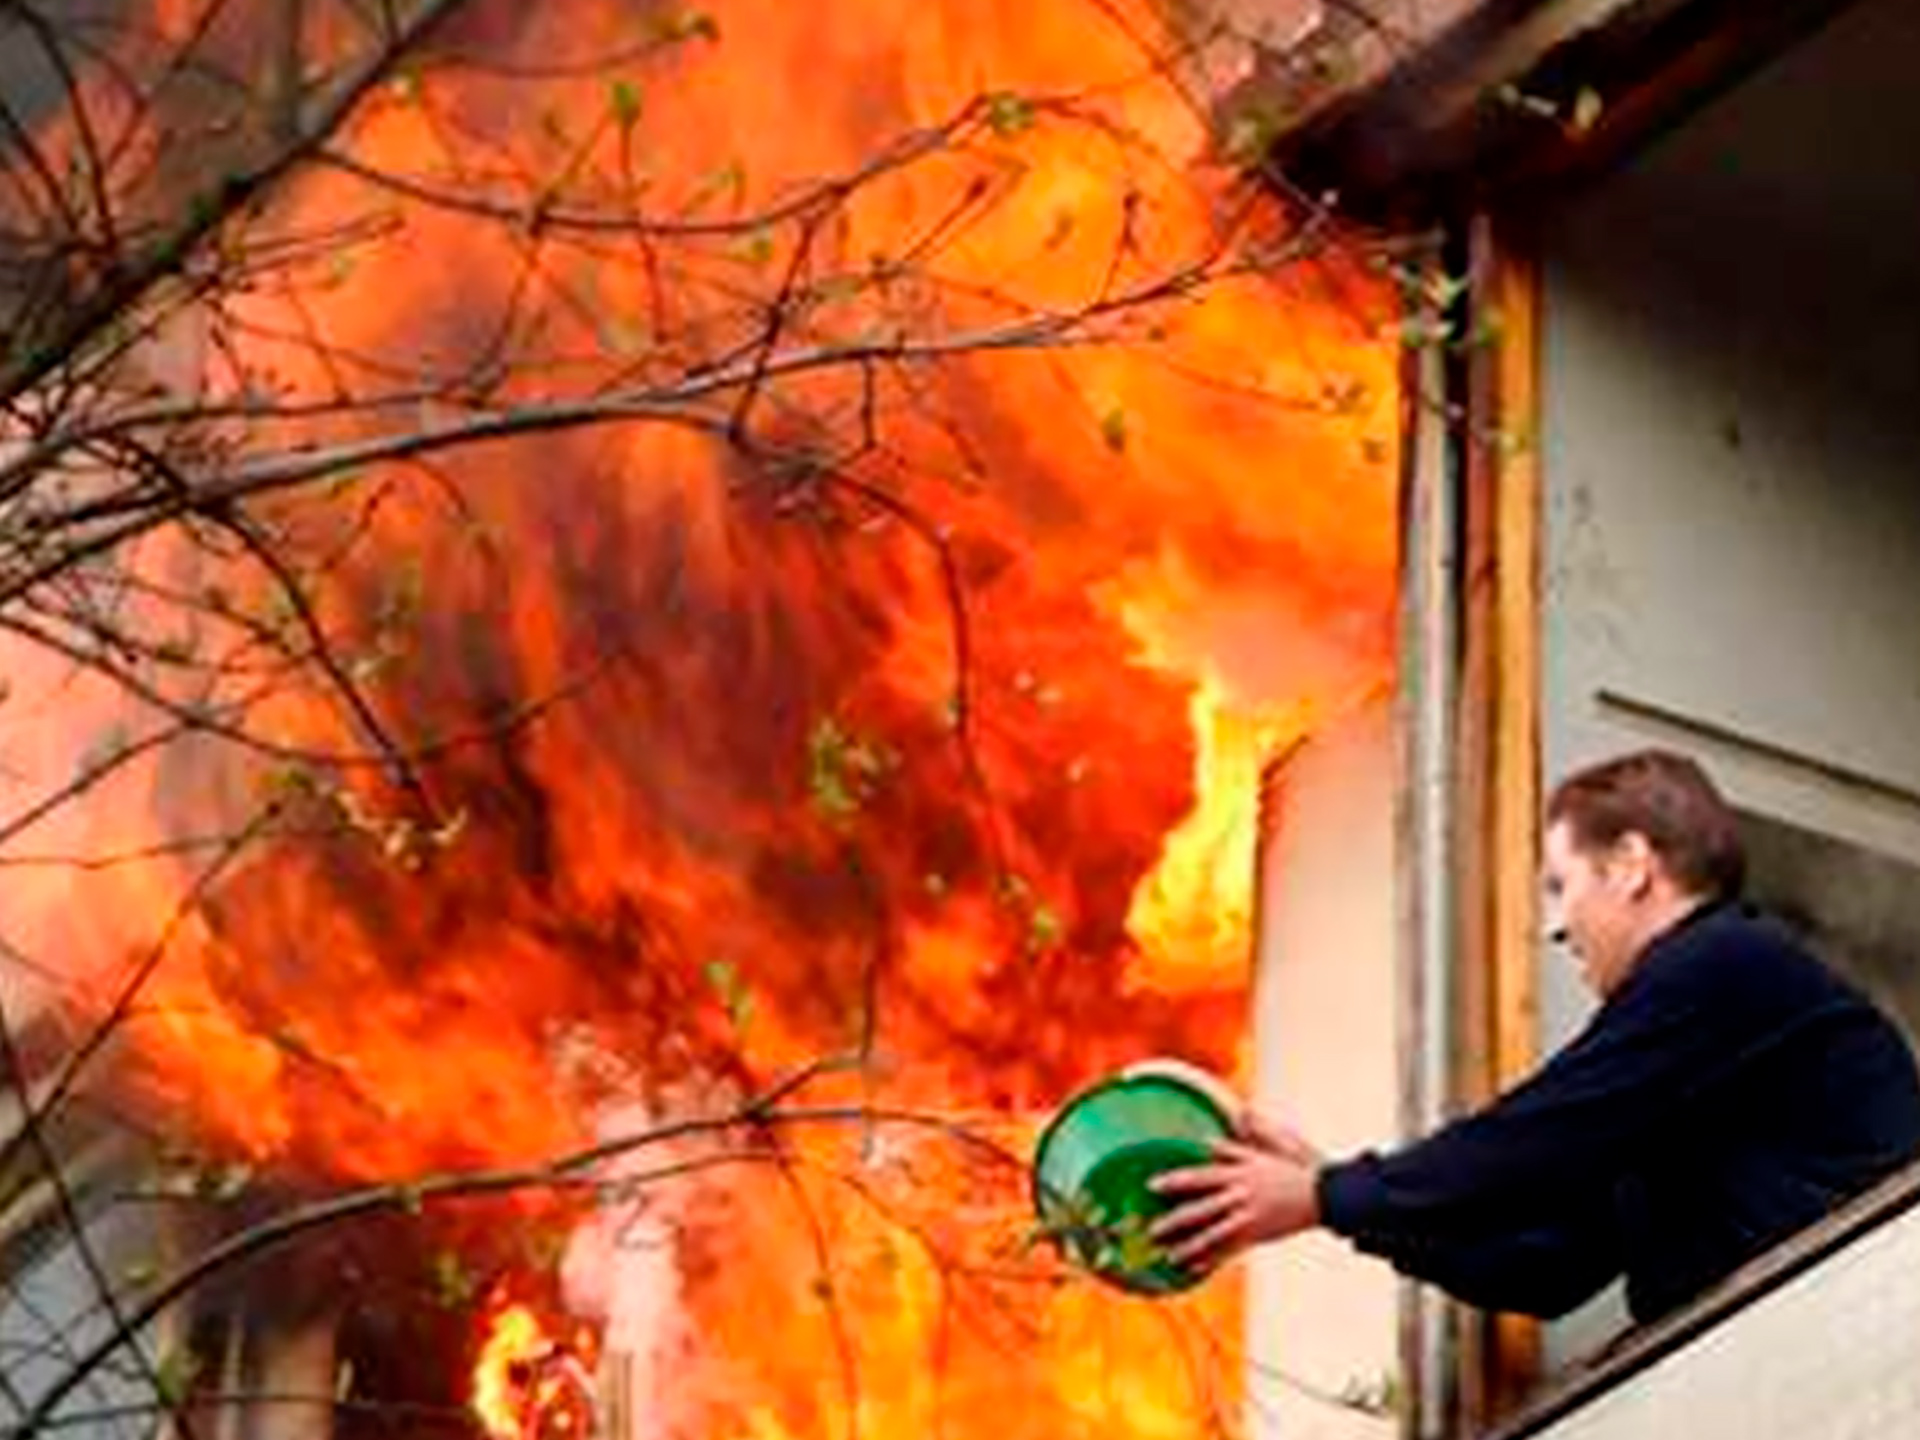 A person trying to put out a fire with a small bucket of water